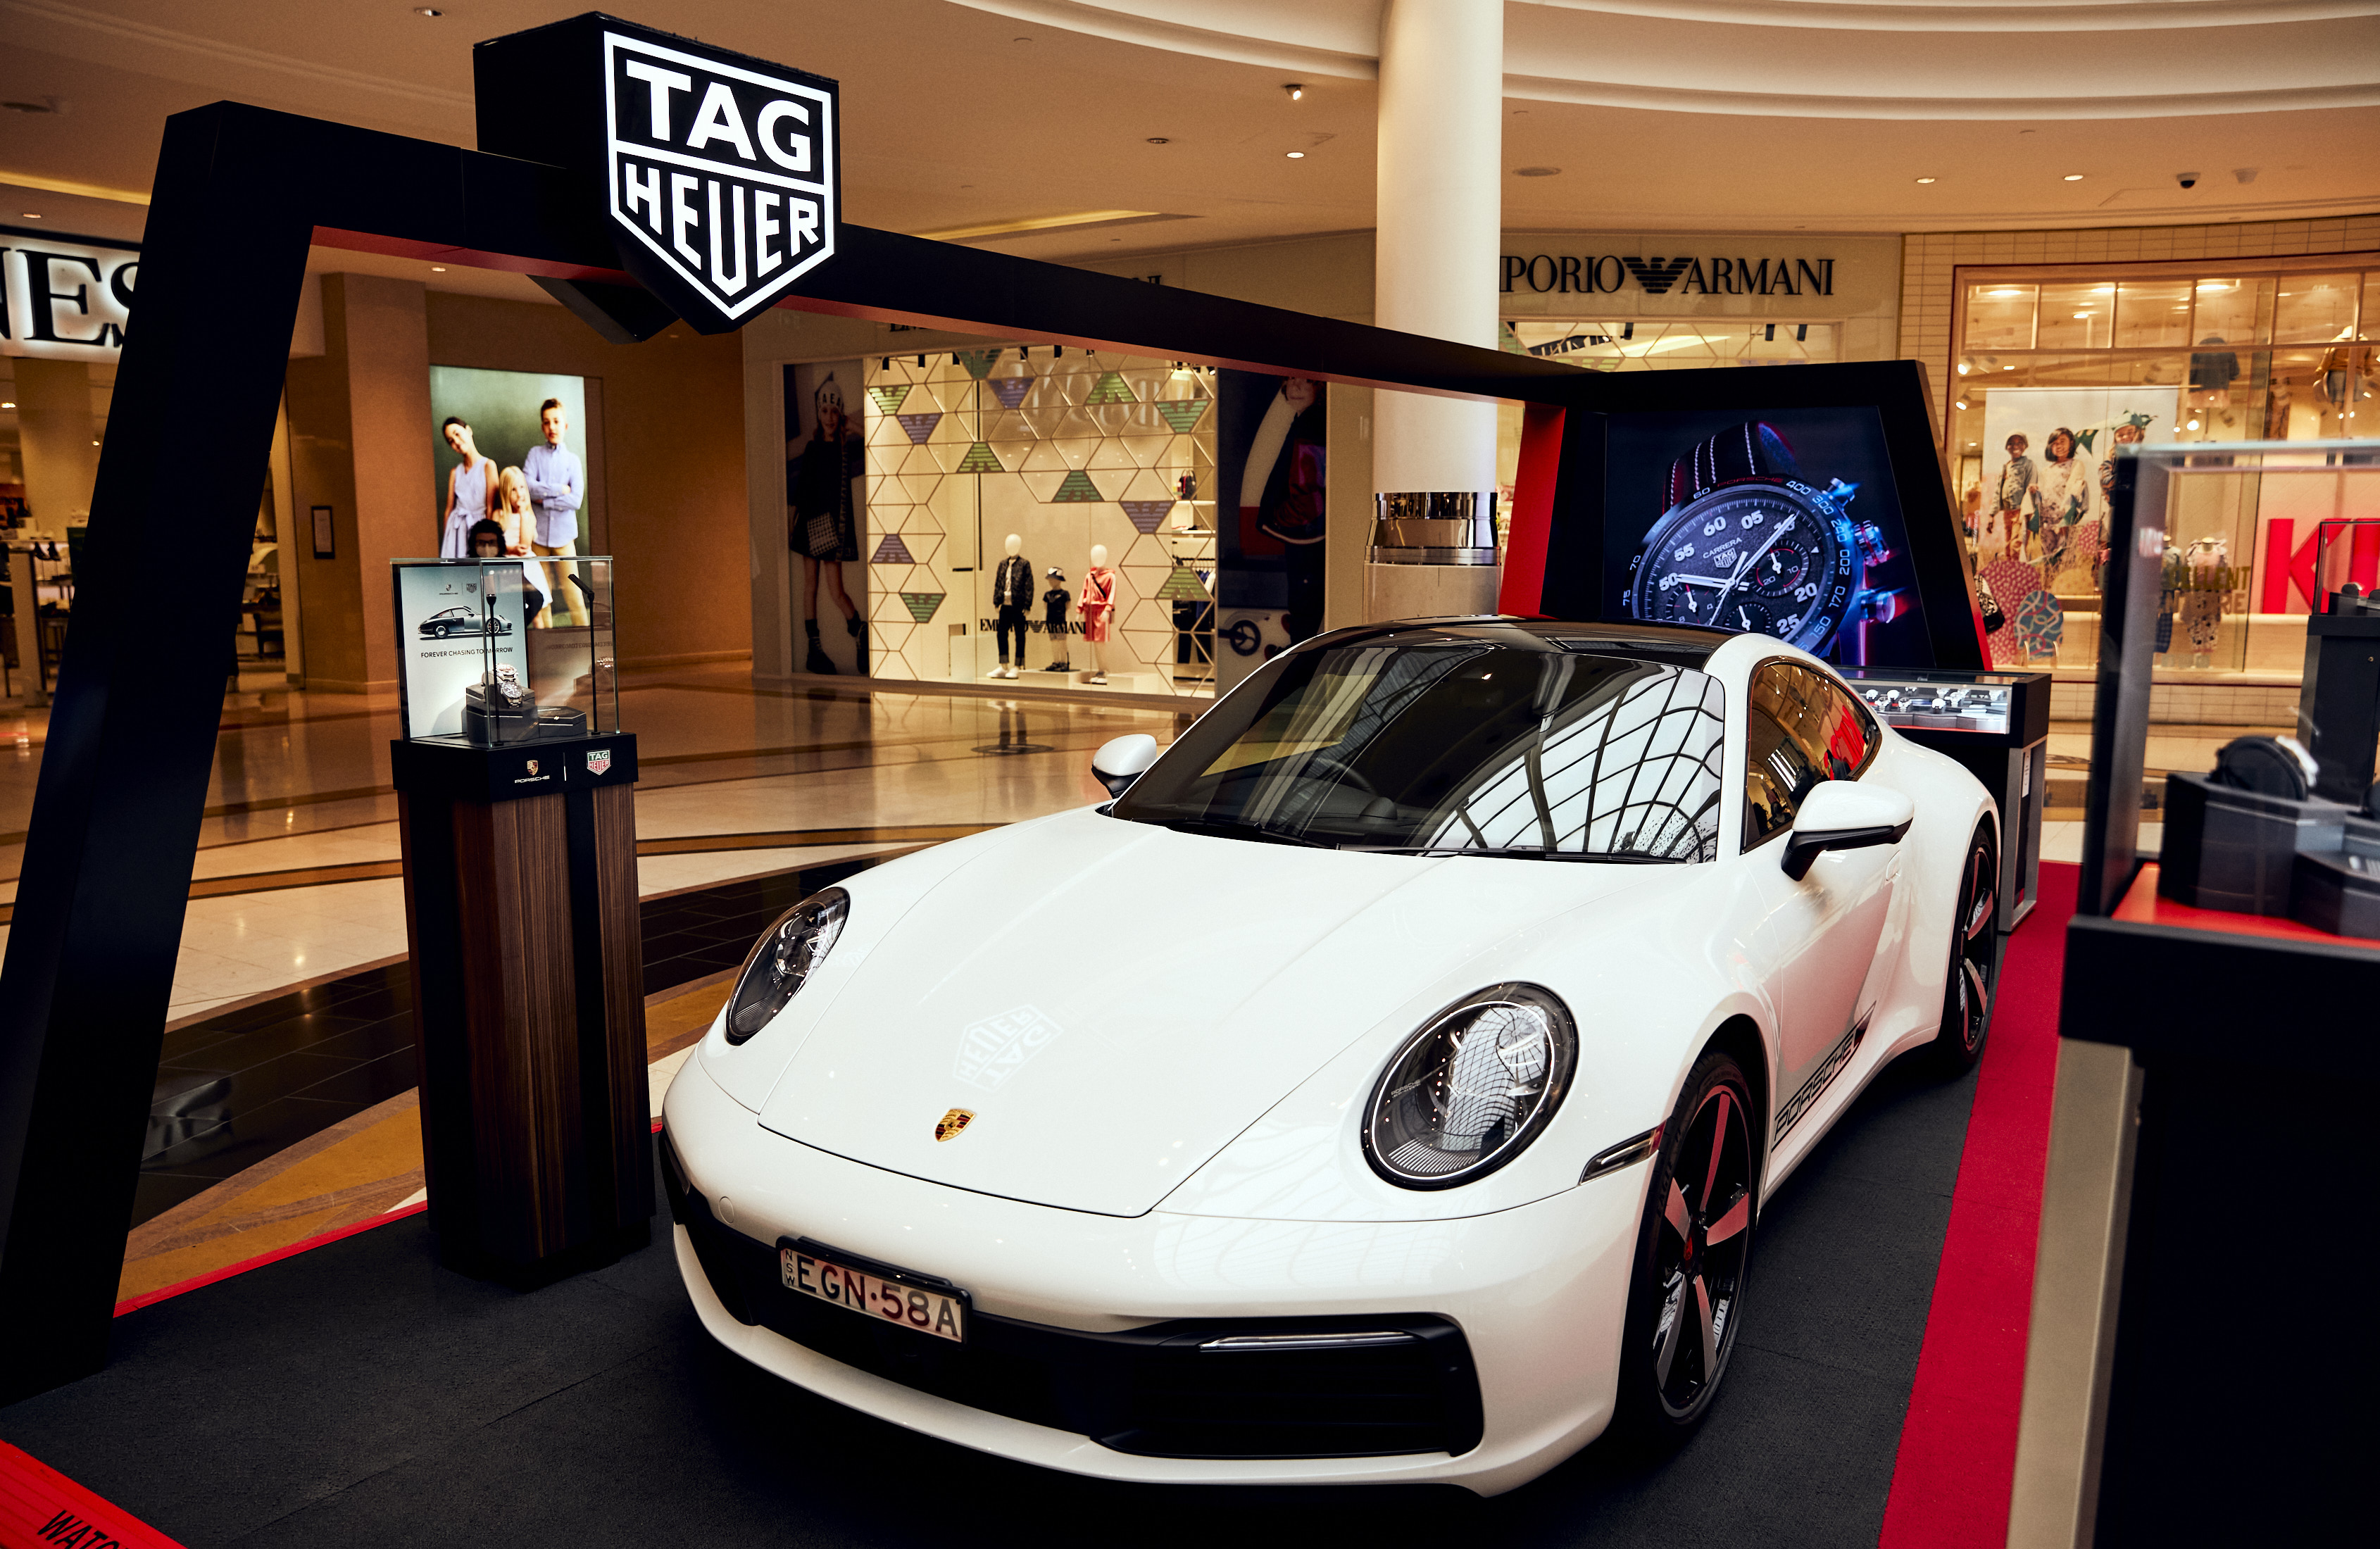 TAG Heuer x Porsche pop-up